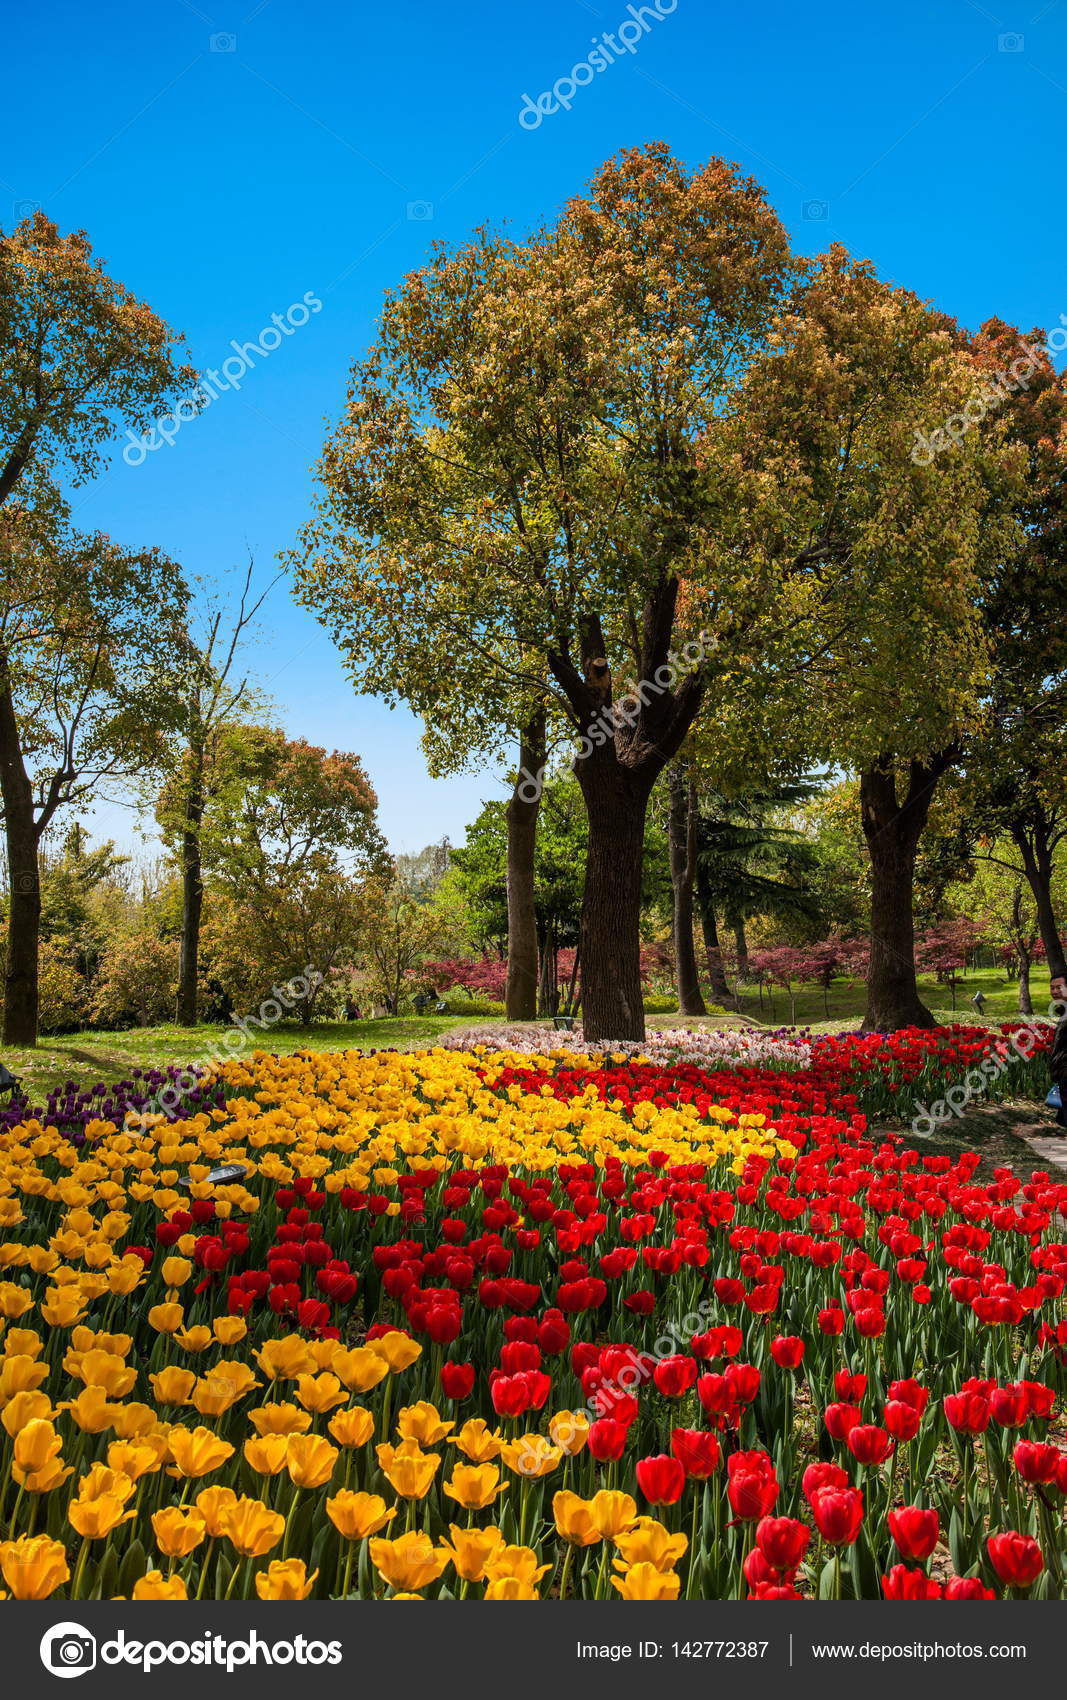 Landscape Design of Garden Tulip Flower on Slender West Lake in ...